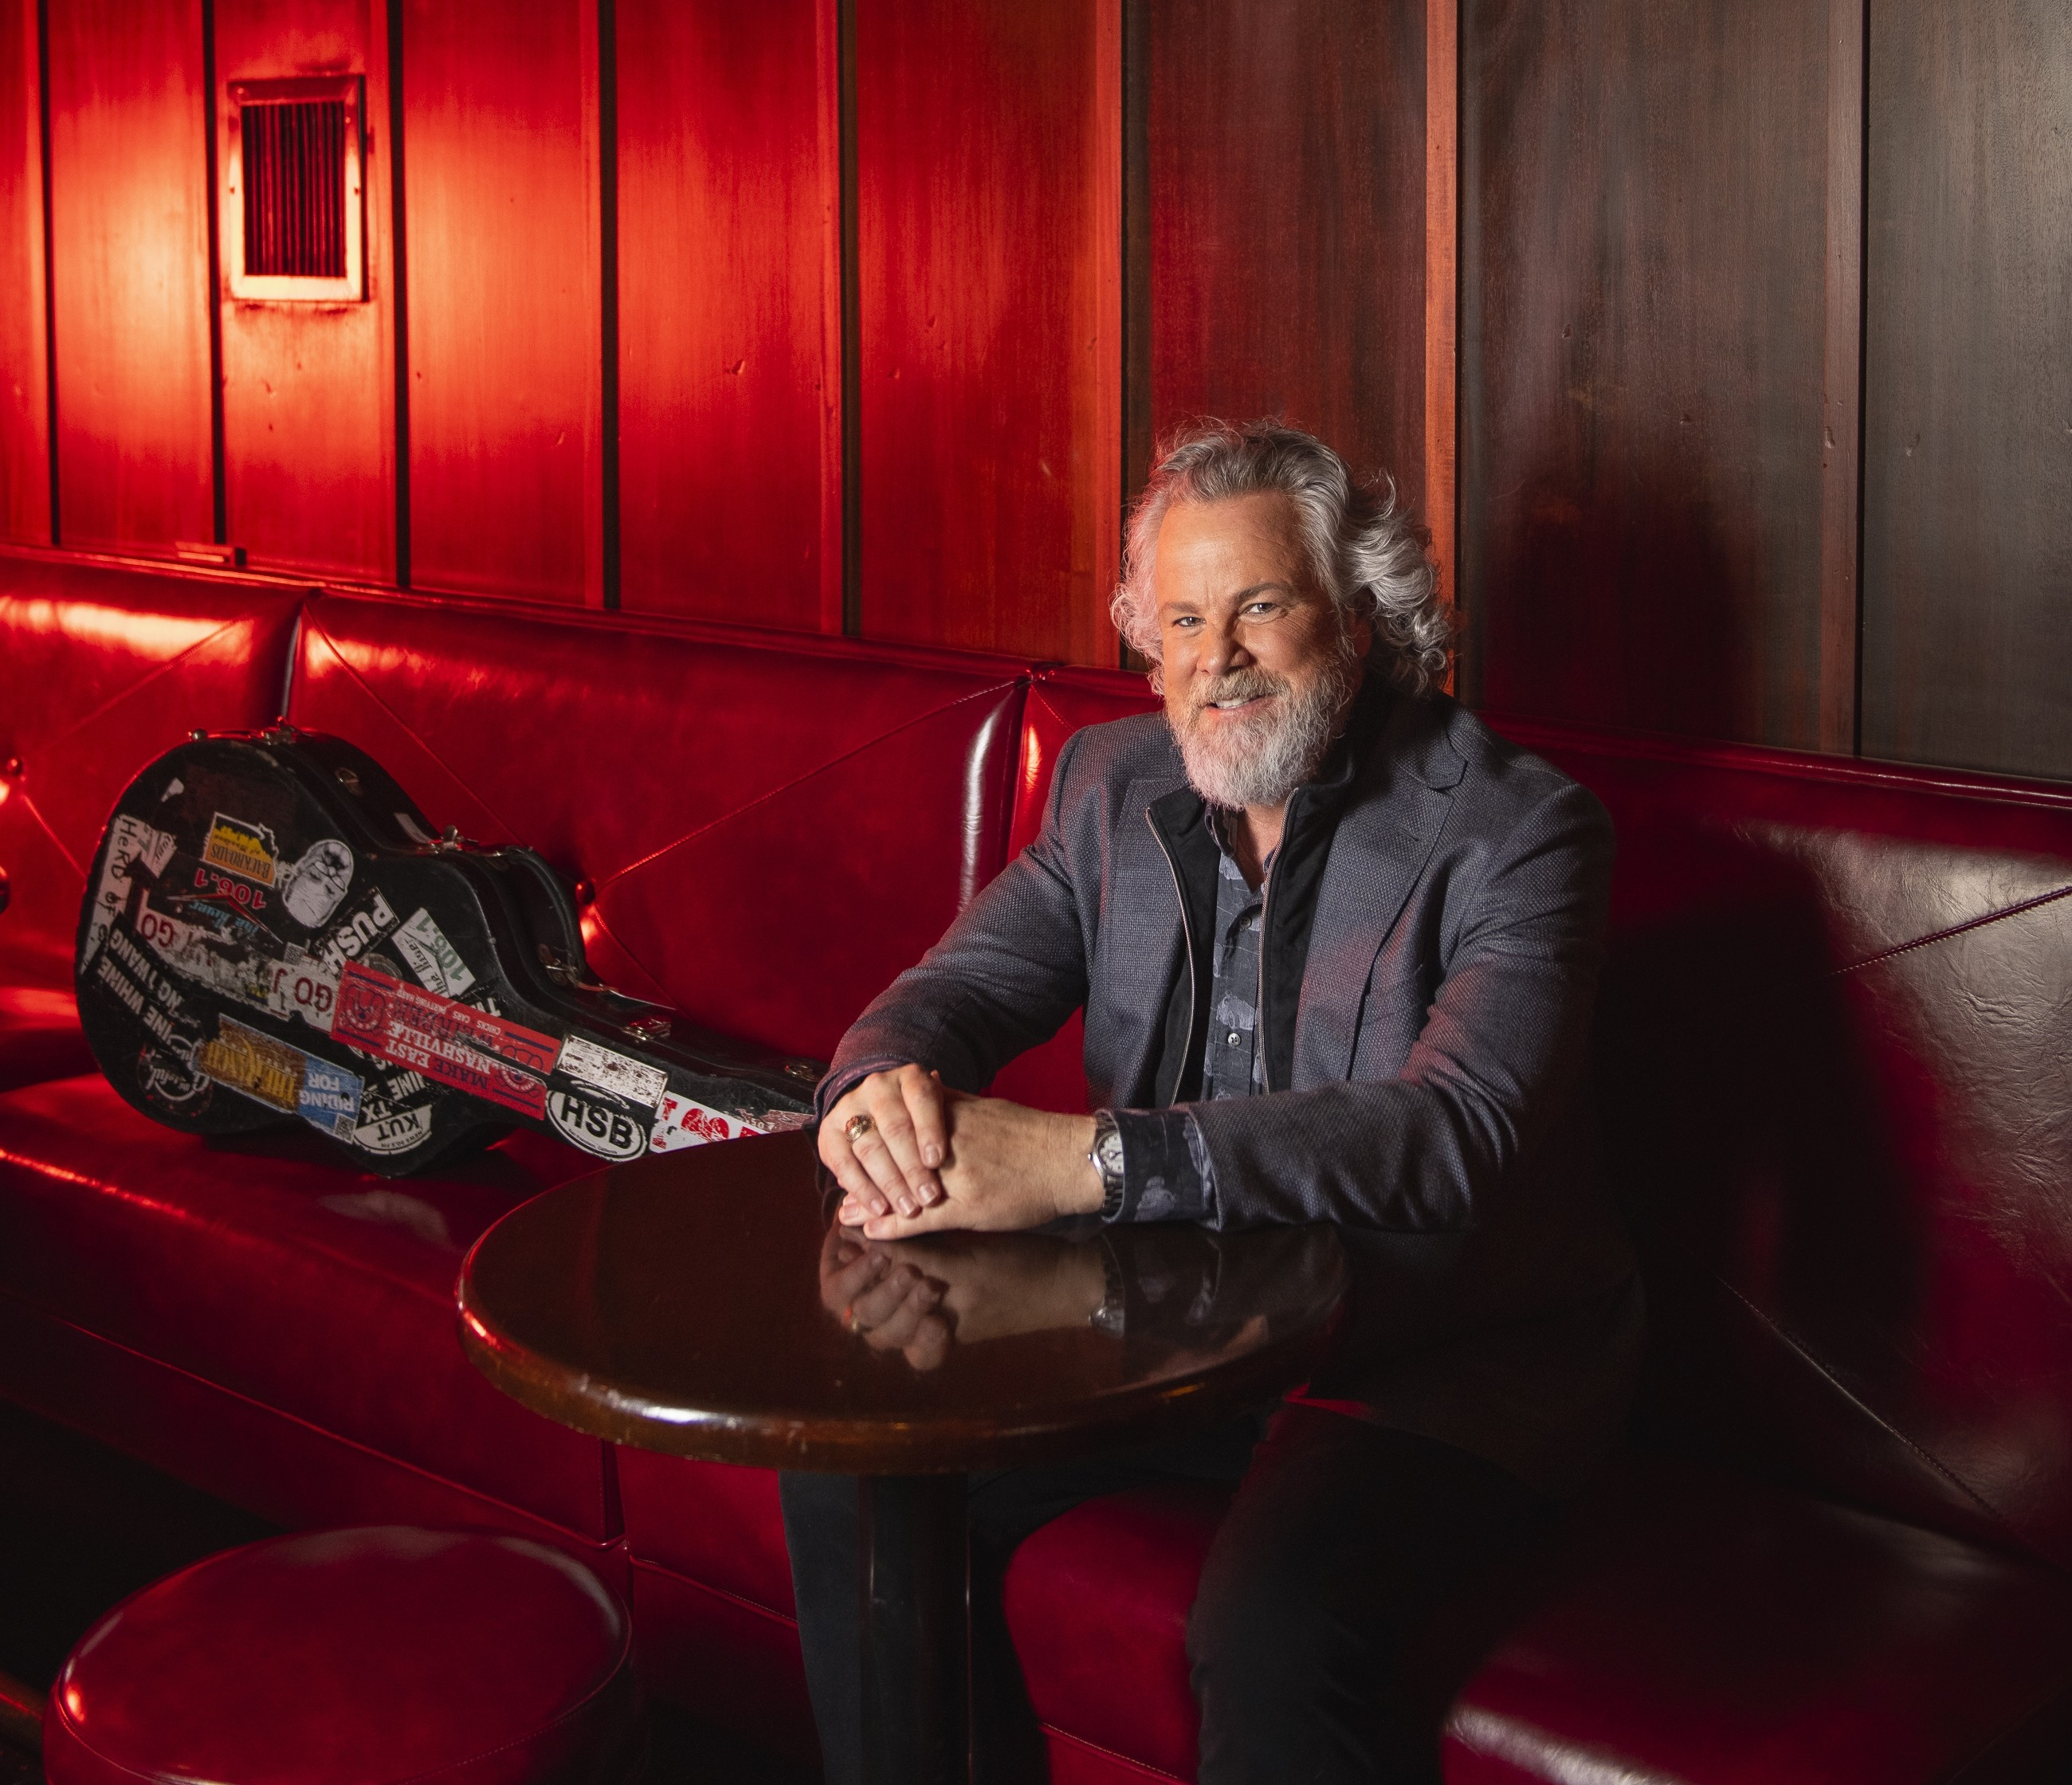 Robert Earl Keen Merry Christmas From The Family.Robert Earl Keen S Countdown To Christmas Comes To Gpac In